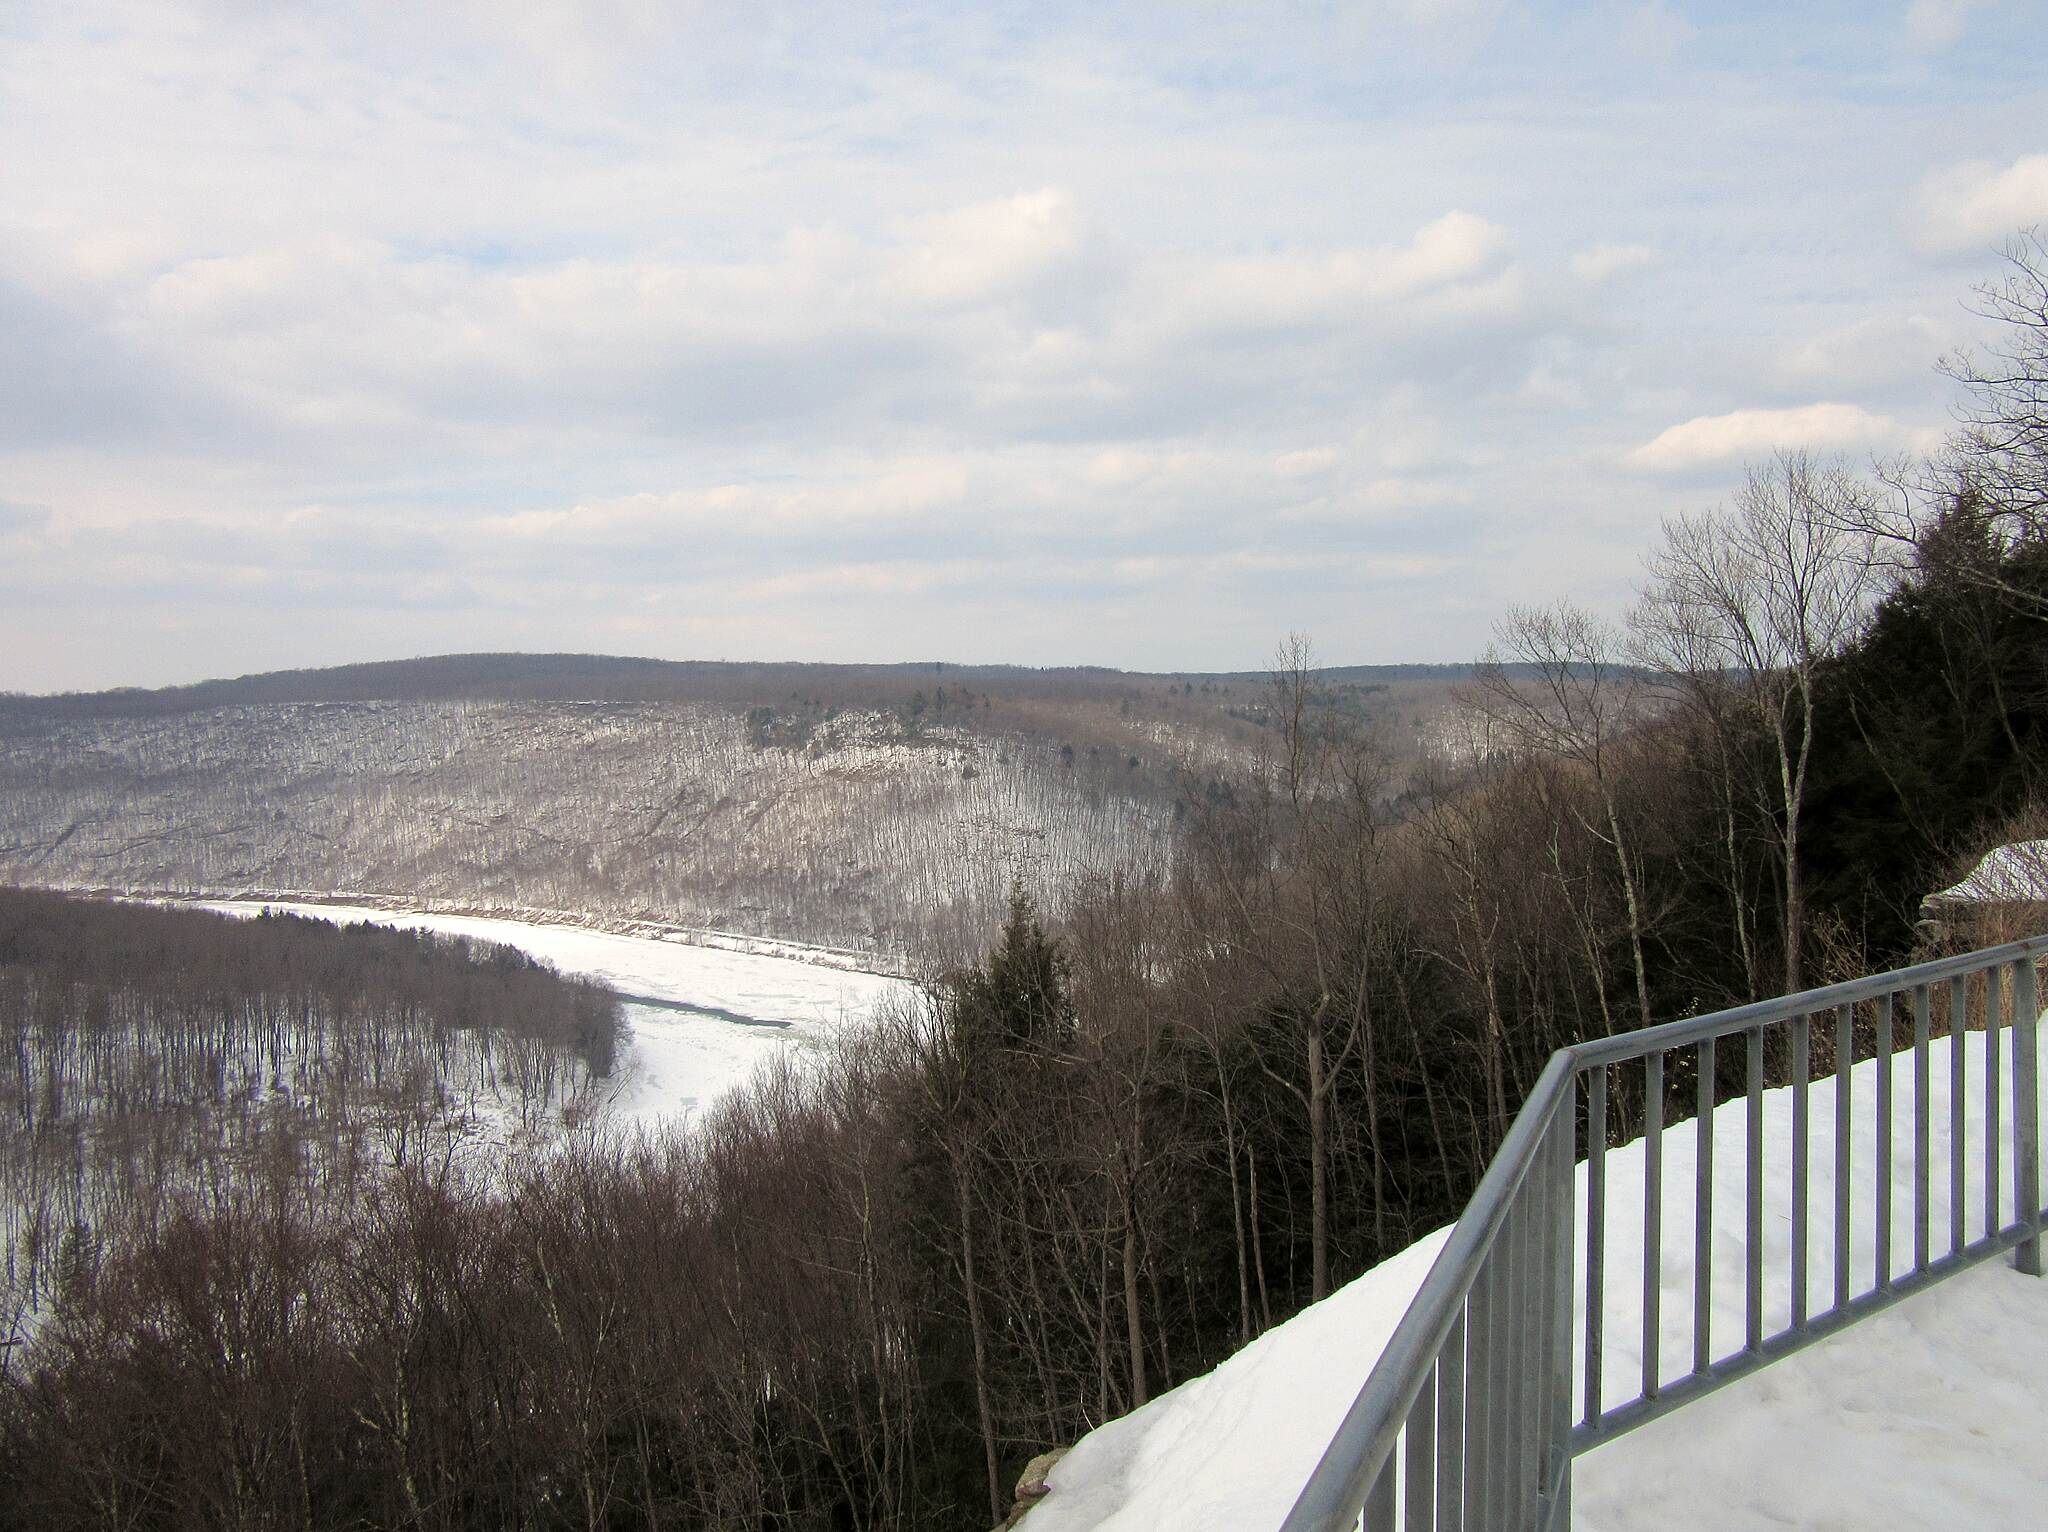 Allegheny River Trail Lookout Kennerdell Lookout, March 2015